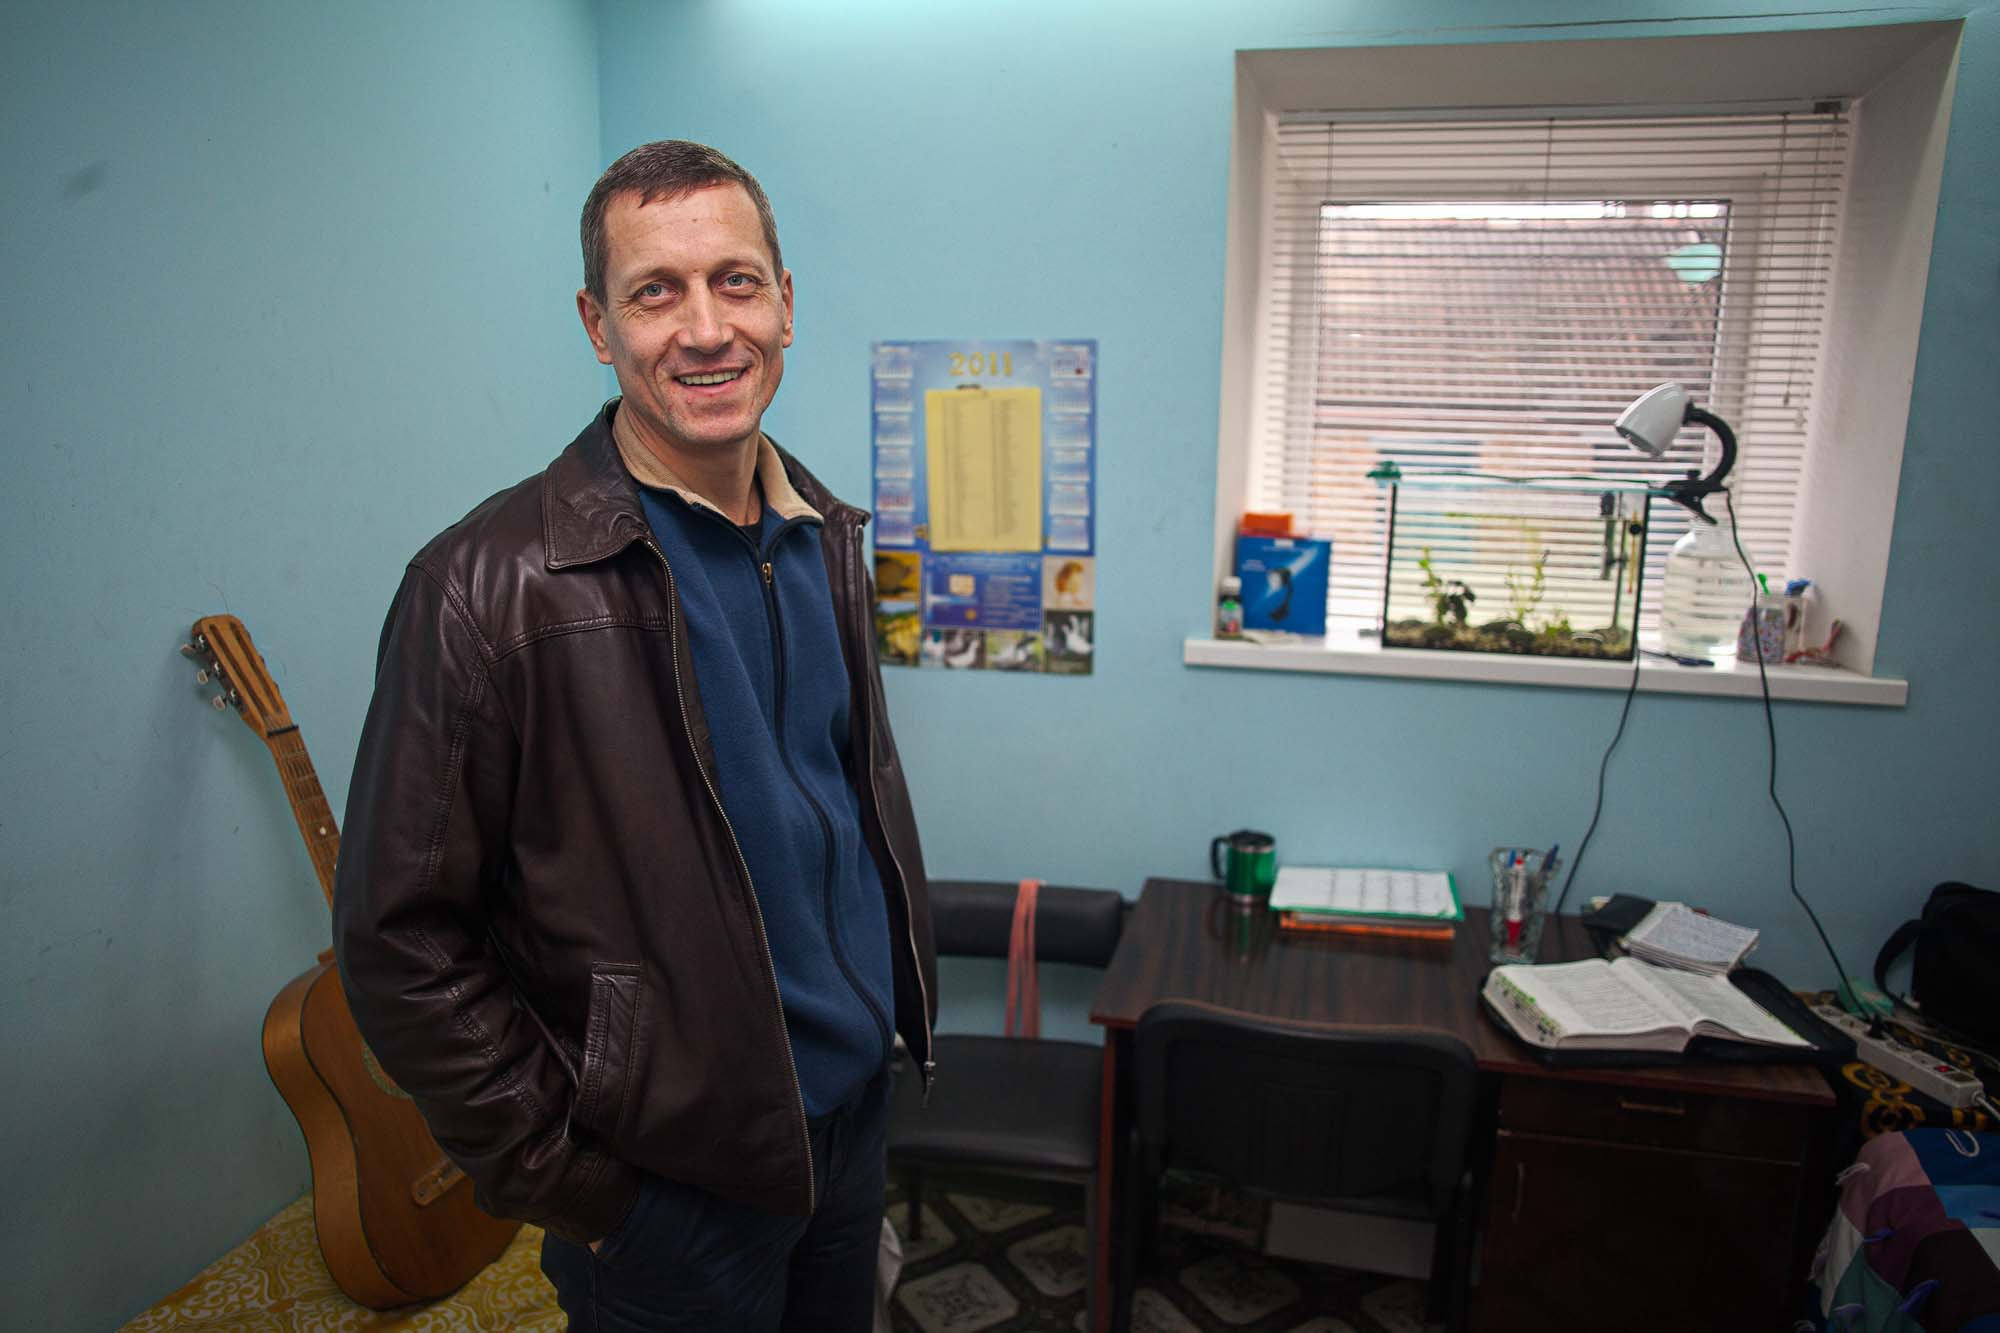 Slavik Lobatch smiles, standing in a room with desk